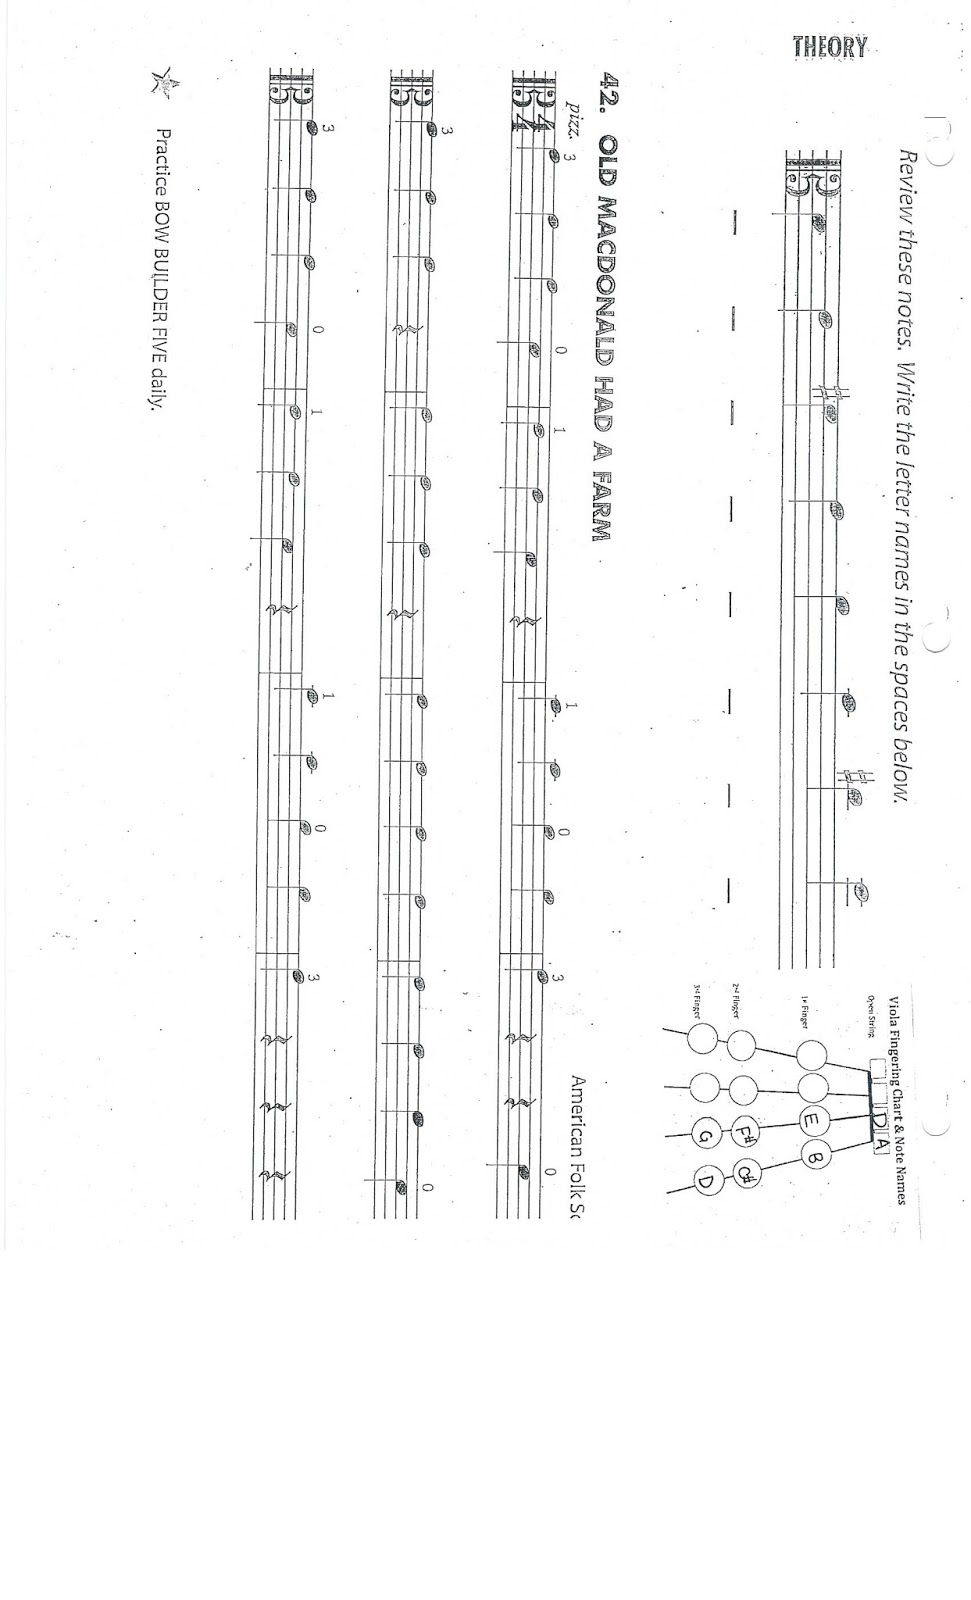 Workbooks violin note reading worksheets : Mrs. Daza's String Things